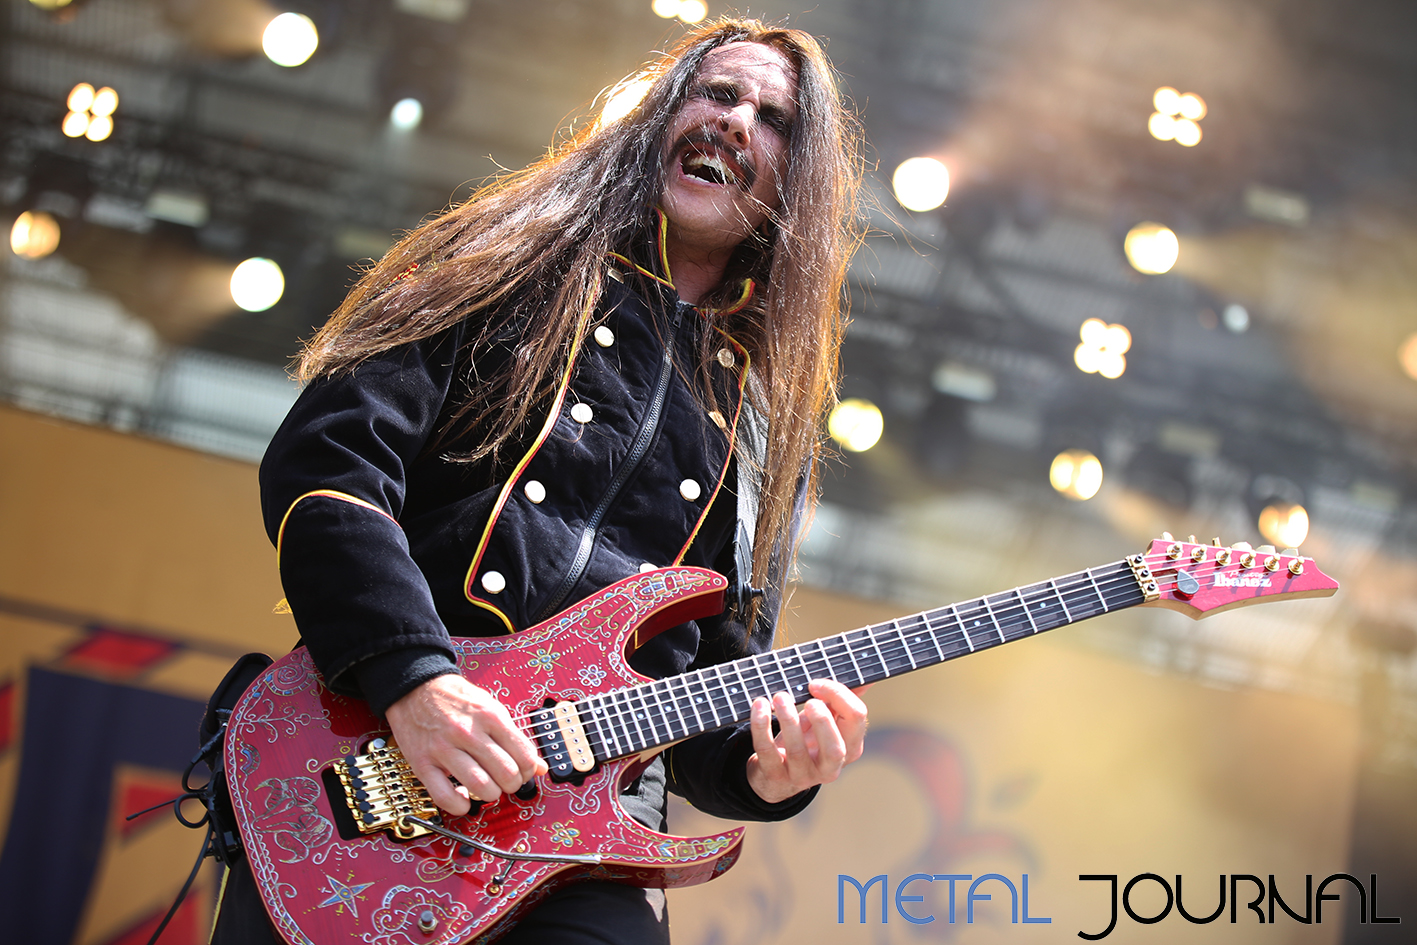 avatar - metal journal rock fest barcelona 2019 pic 3